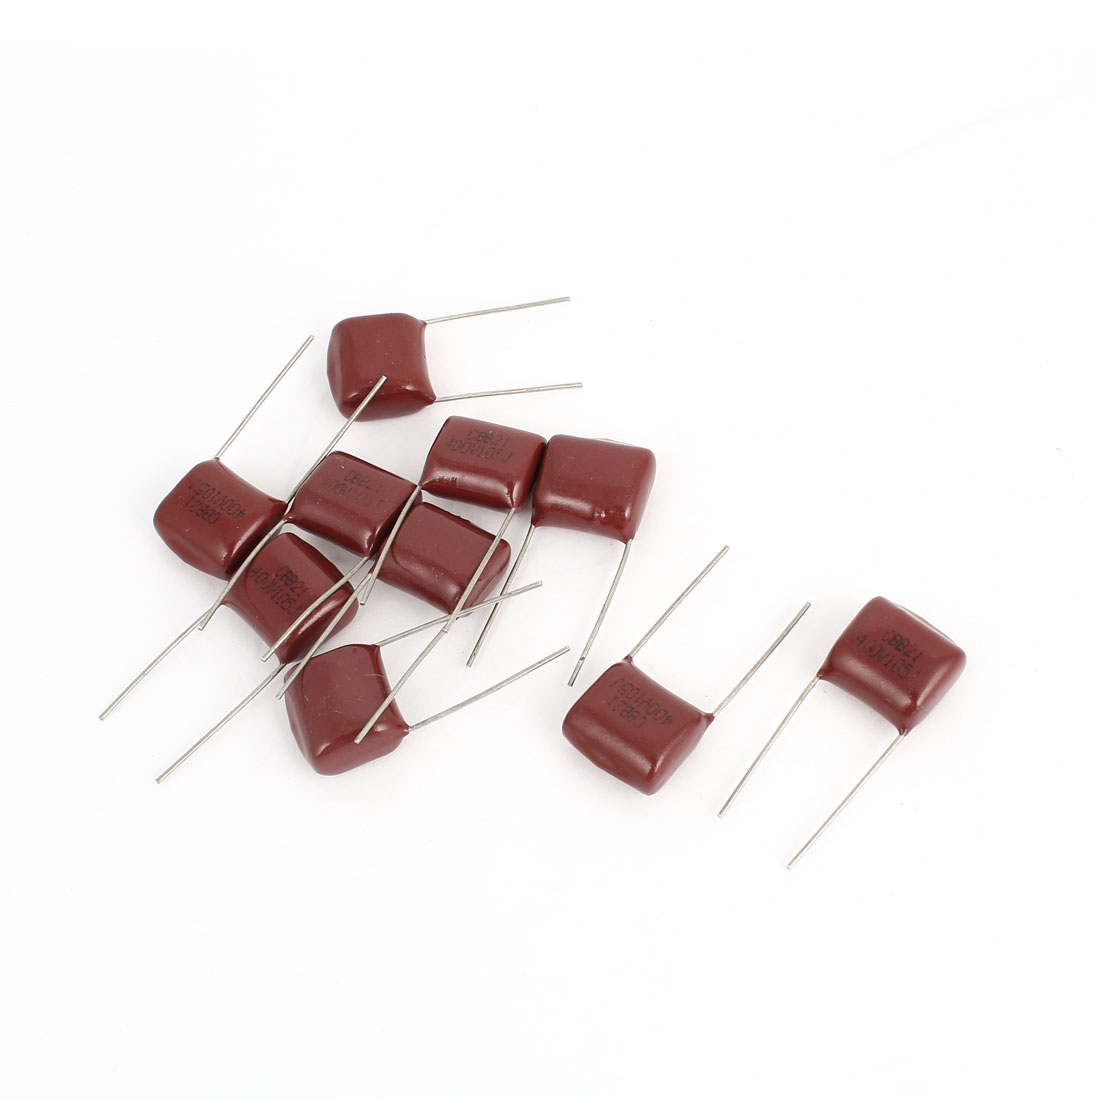 10PCS CBB21 400V 105J 1uf 5% Tolerance Radial Lead Metallized Polypropylene Film Capacitors